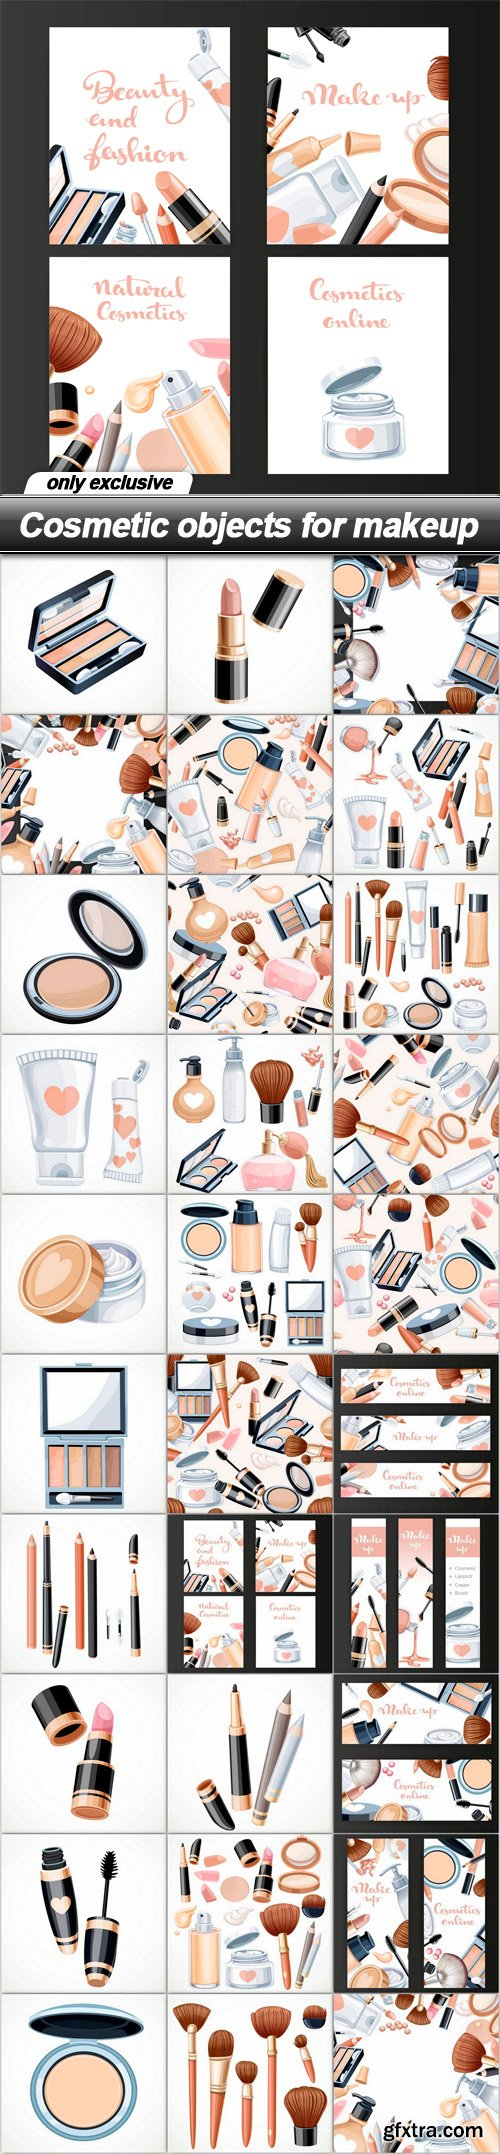 Cosmetic objects for makeup - 30 EPS